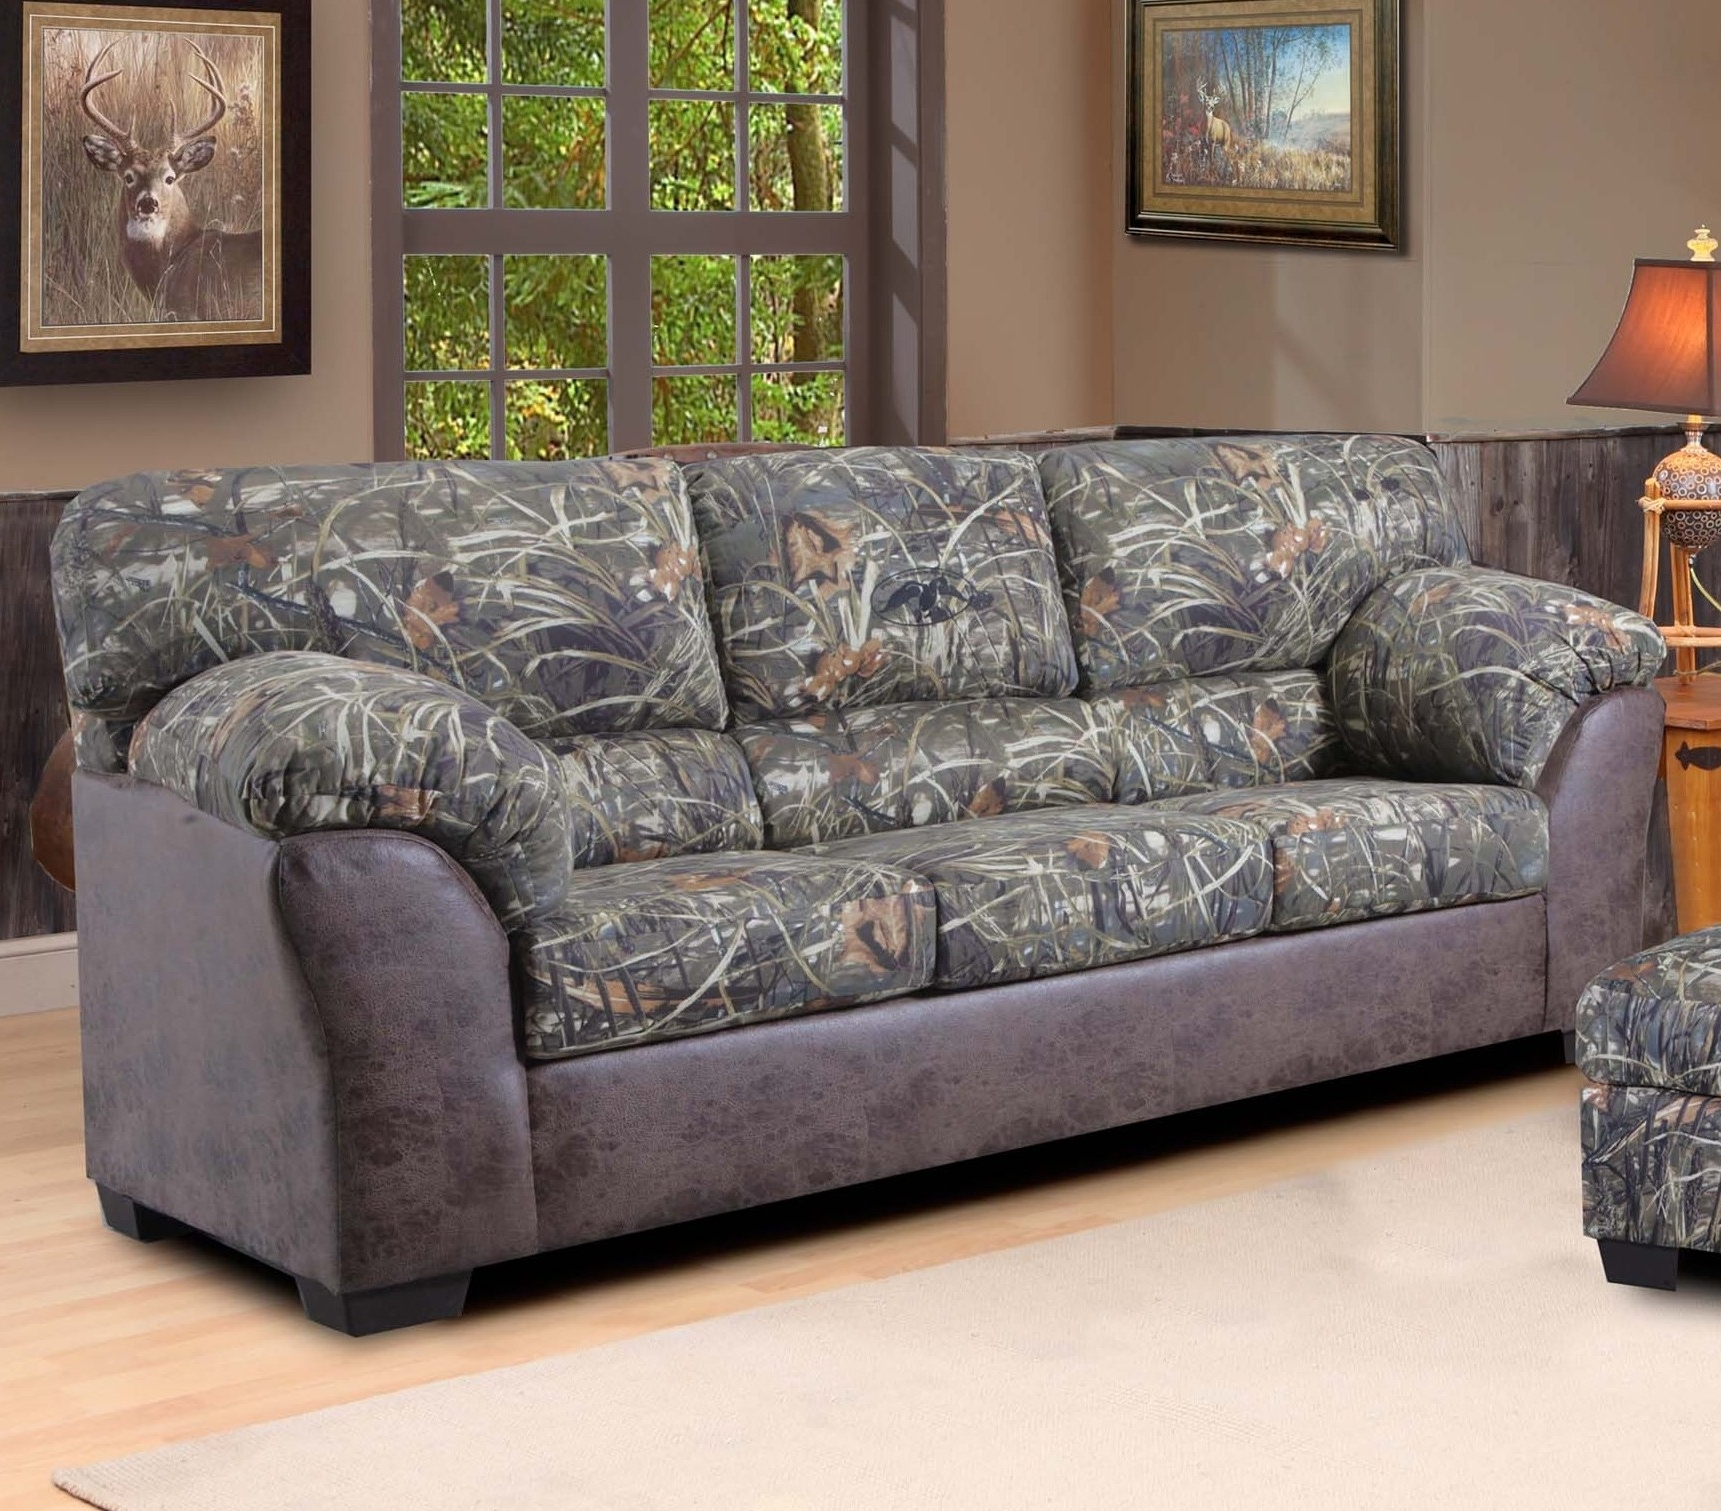 Fashionable Sectional Sofas Tucson – Hotelsbacau Within Tucson Sectional Sofas (View 1 of 15)